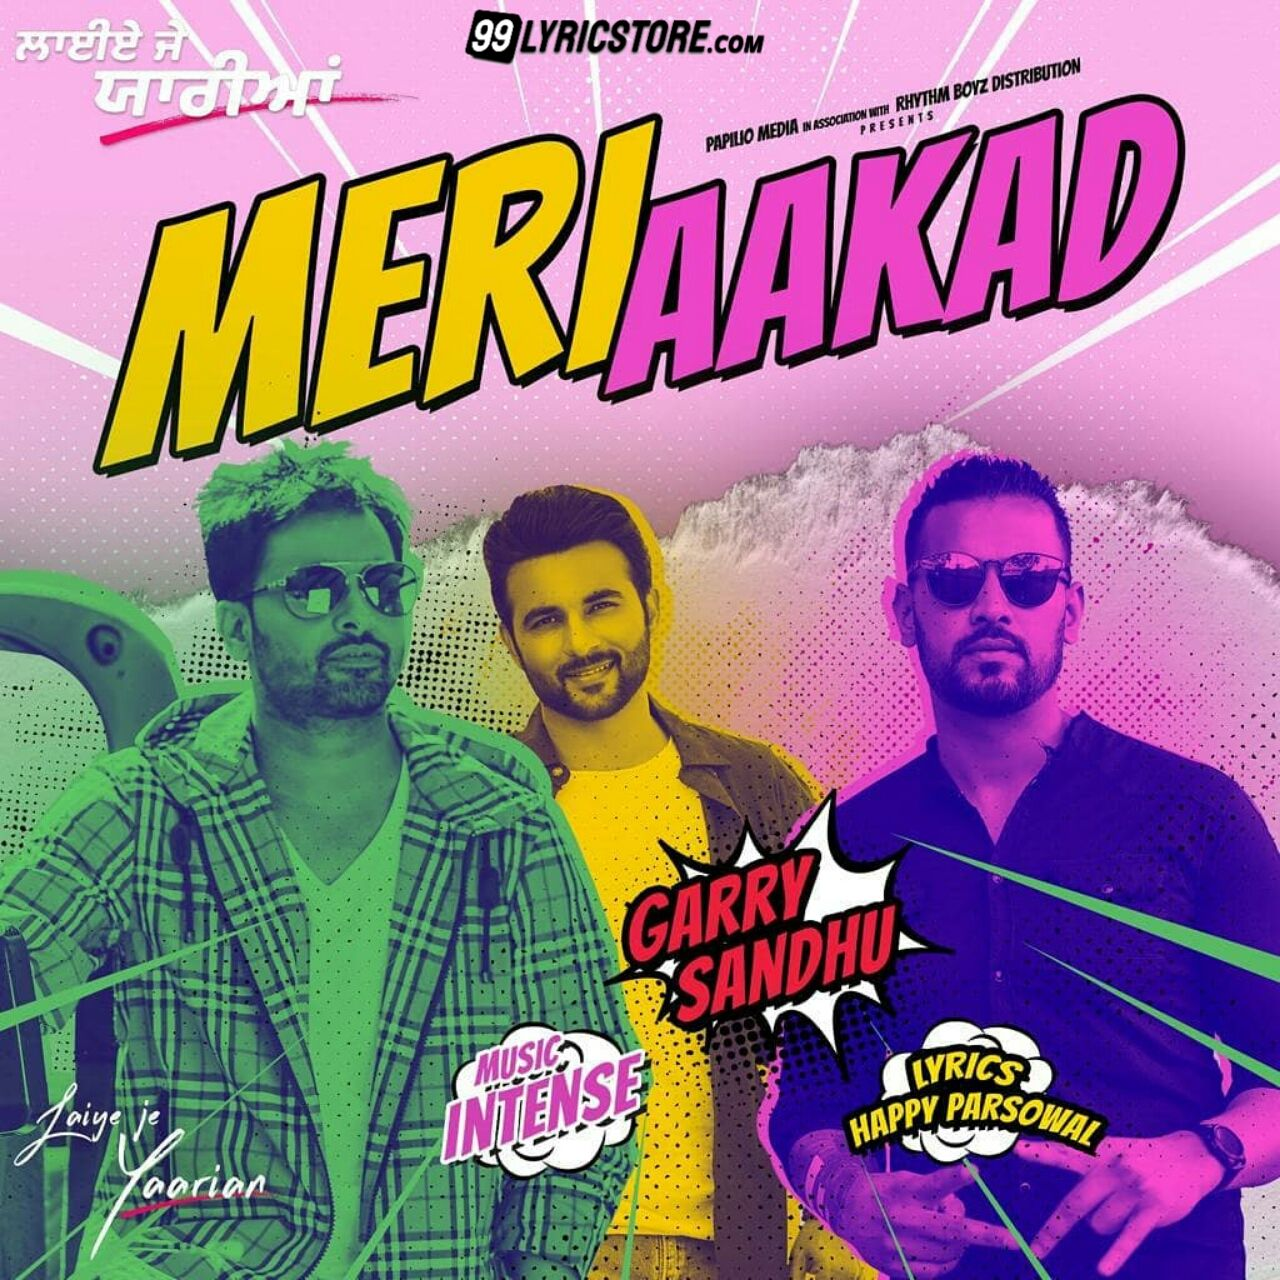 Meri Aakad Punjabi Song Lyrics Sung by Garry Sandhu from movie Laiye Je Yaarian